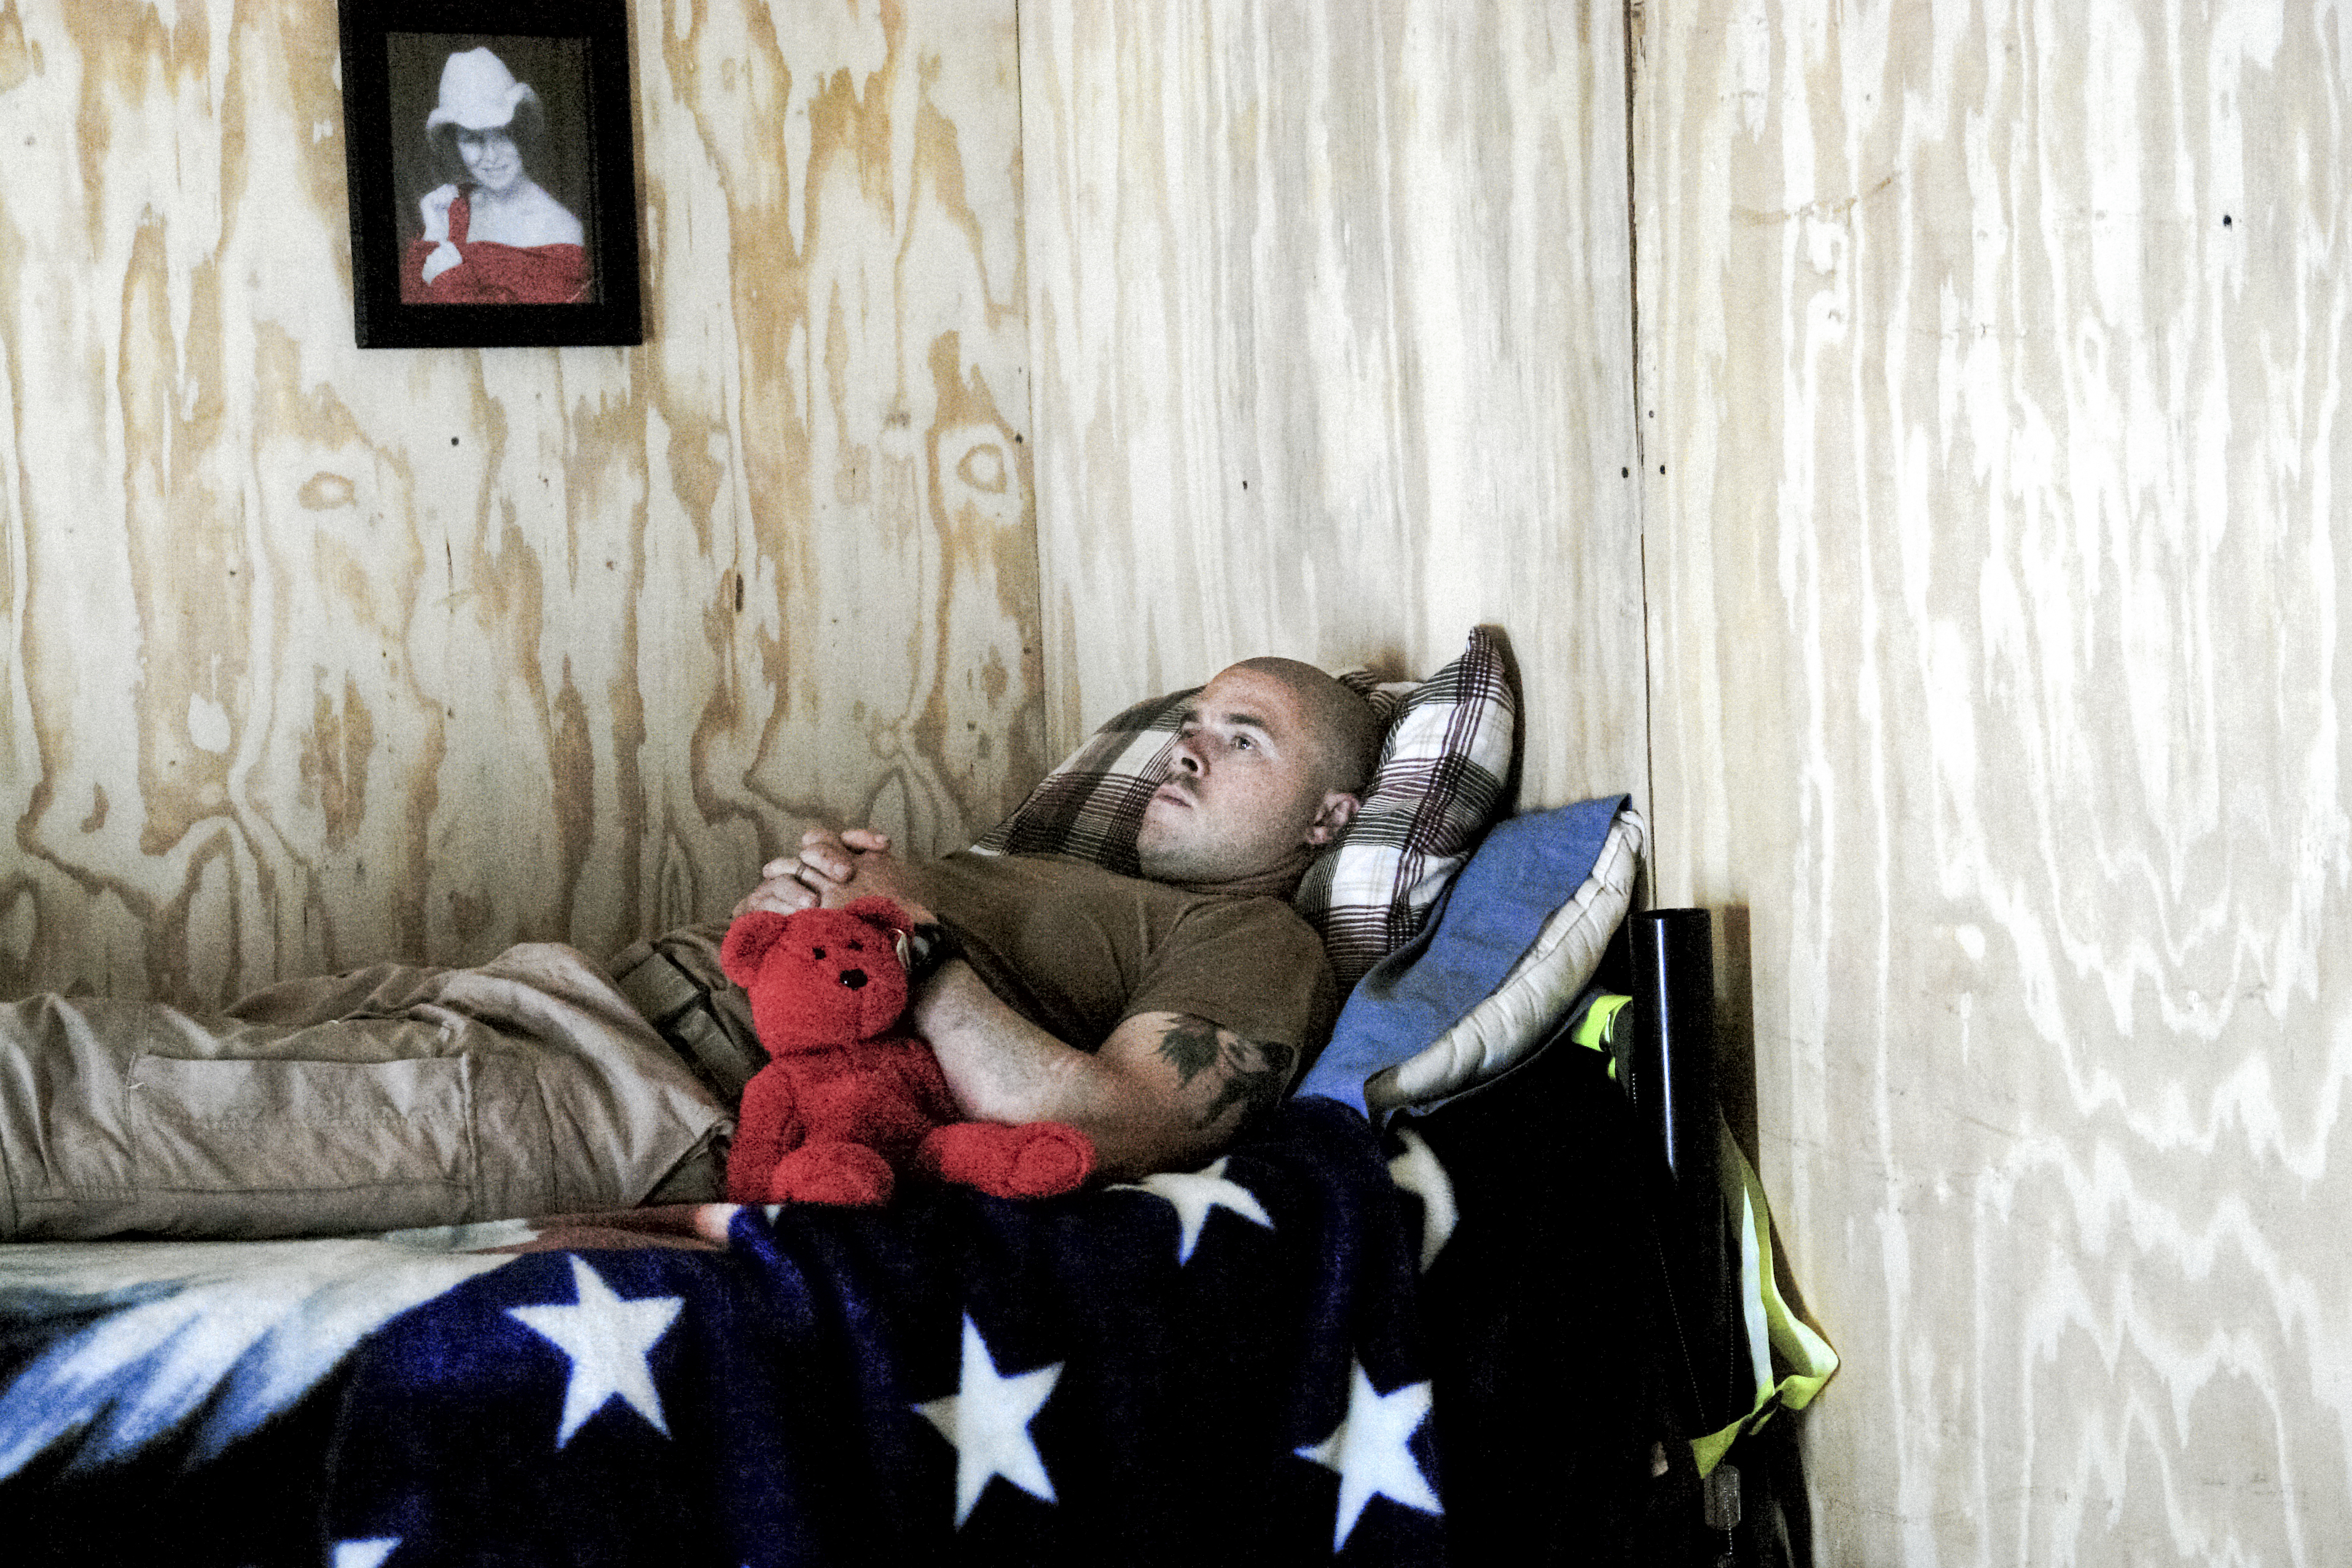 A flight medic rests and watches TV while waiting for a mission in the medevac section of FOB Falcon.                                 The medevacs are usually off the ground within ten minutes of an emergency call coming in. Their quick reaction time to injuries is a large part of the reason the 95% of American soldiers that make it to the hospital end up surviving their wounds.